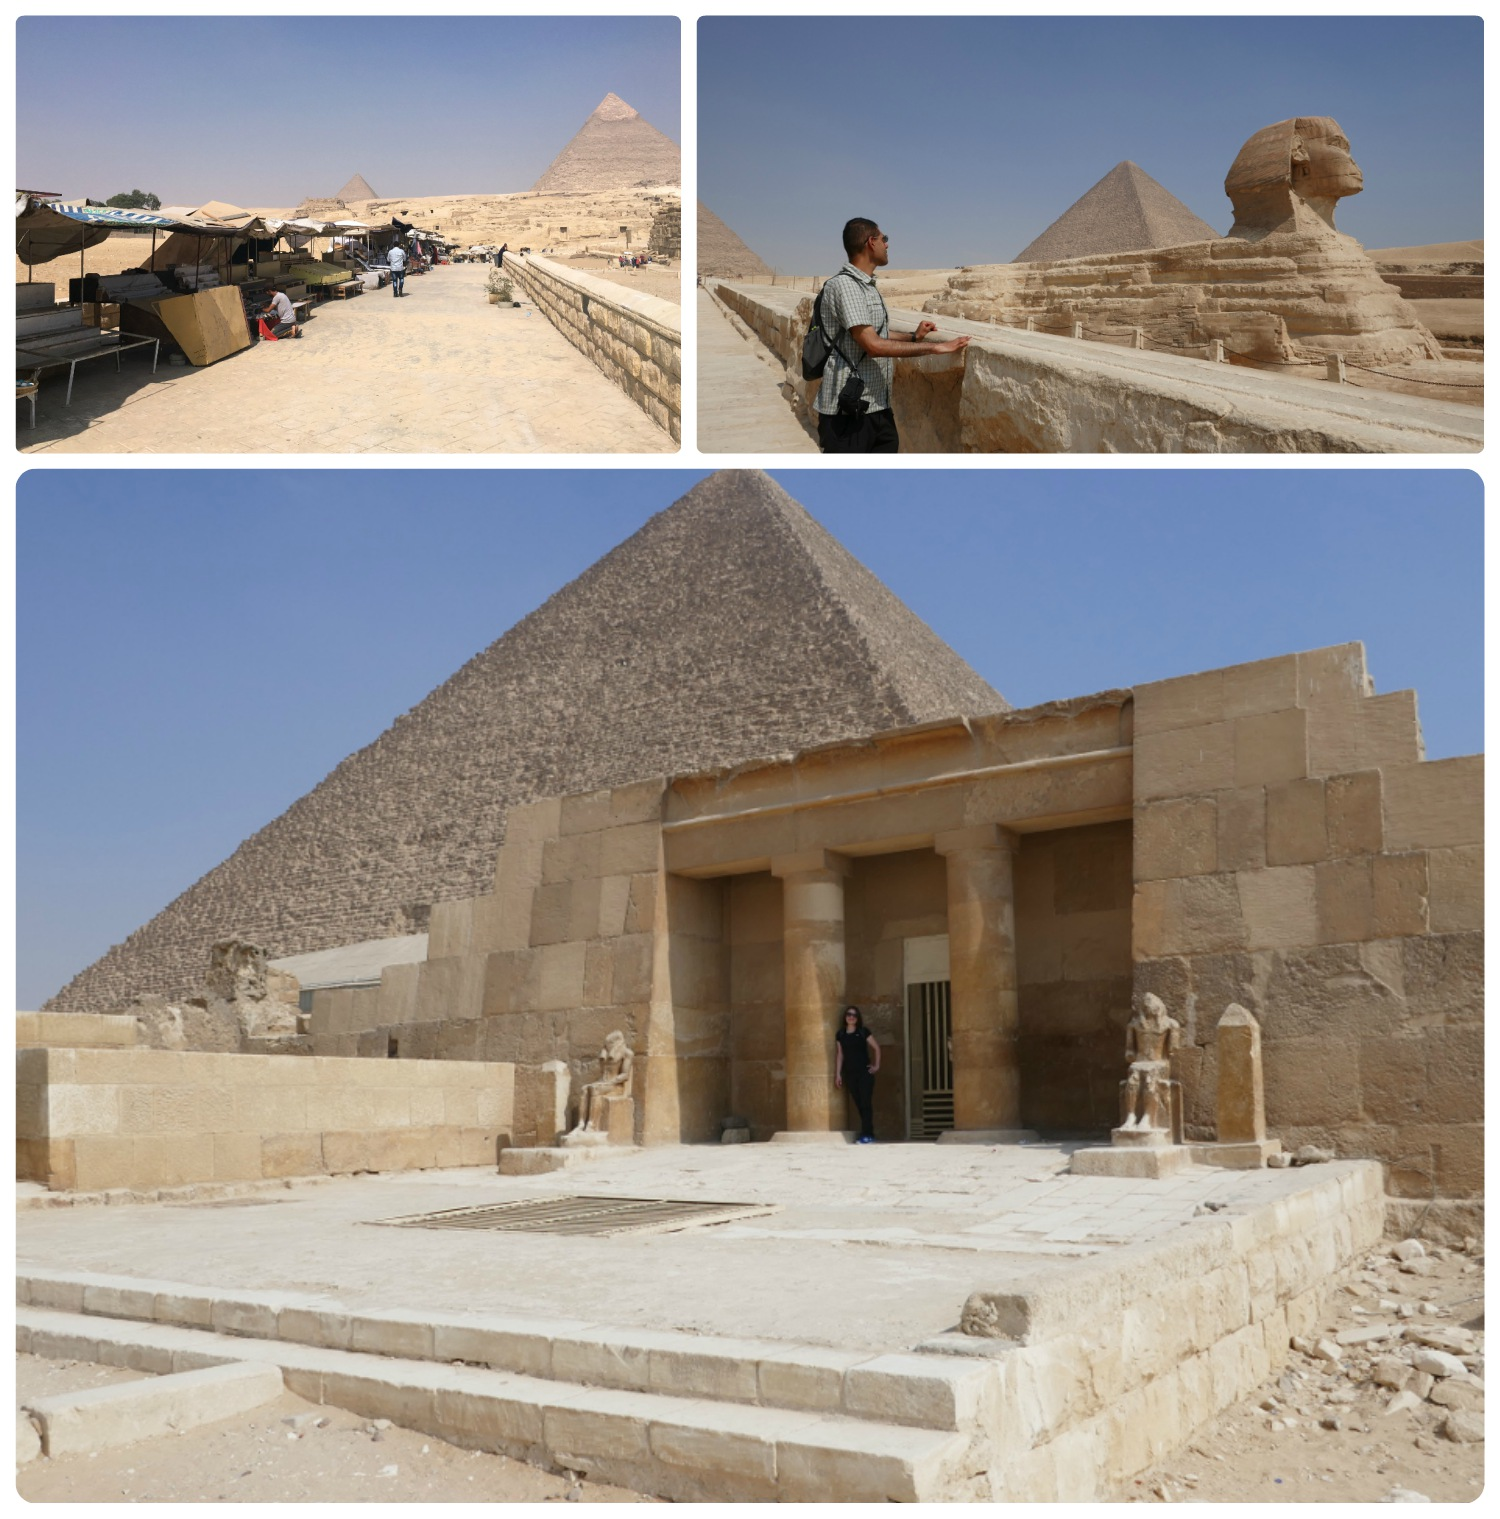 Clockwise (from the top): On the way to the Great Sphinx are rows of vendor stands, Sergio looking at the Sphinx with the Great Pyramid behind it, Shannon at the Eastern Cemetery.